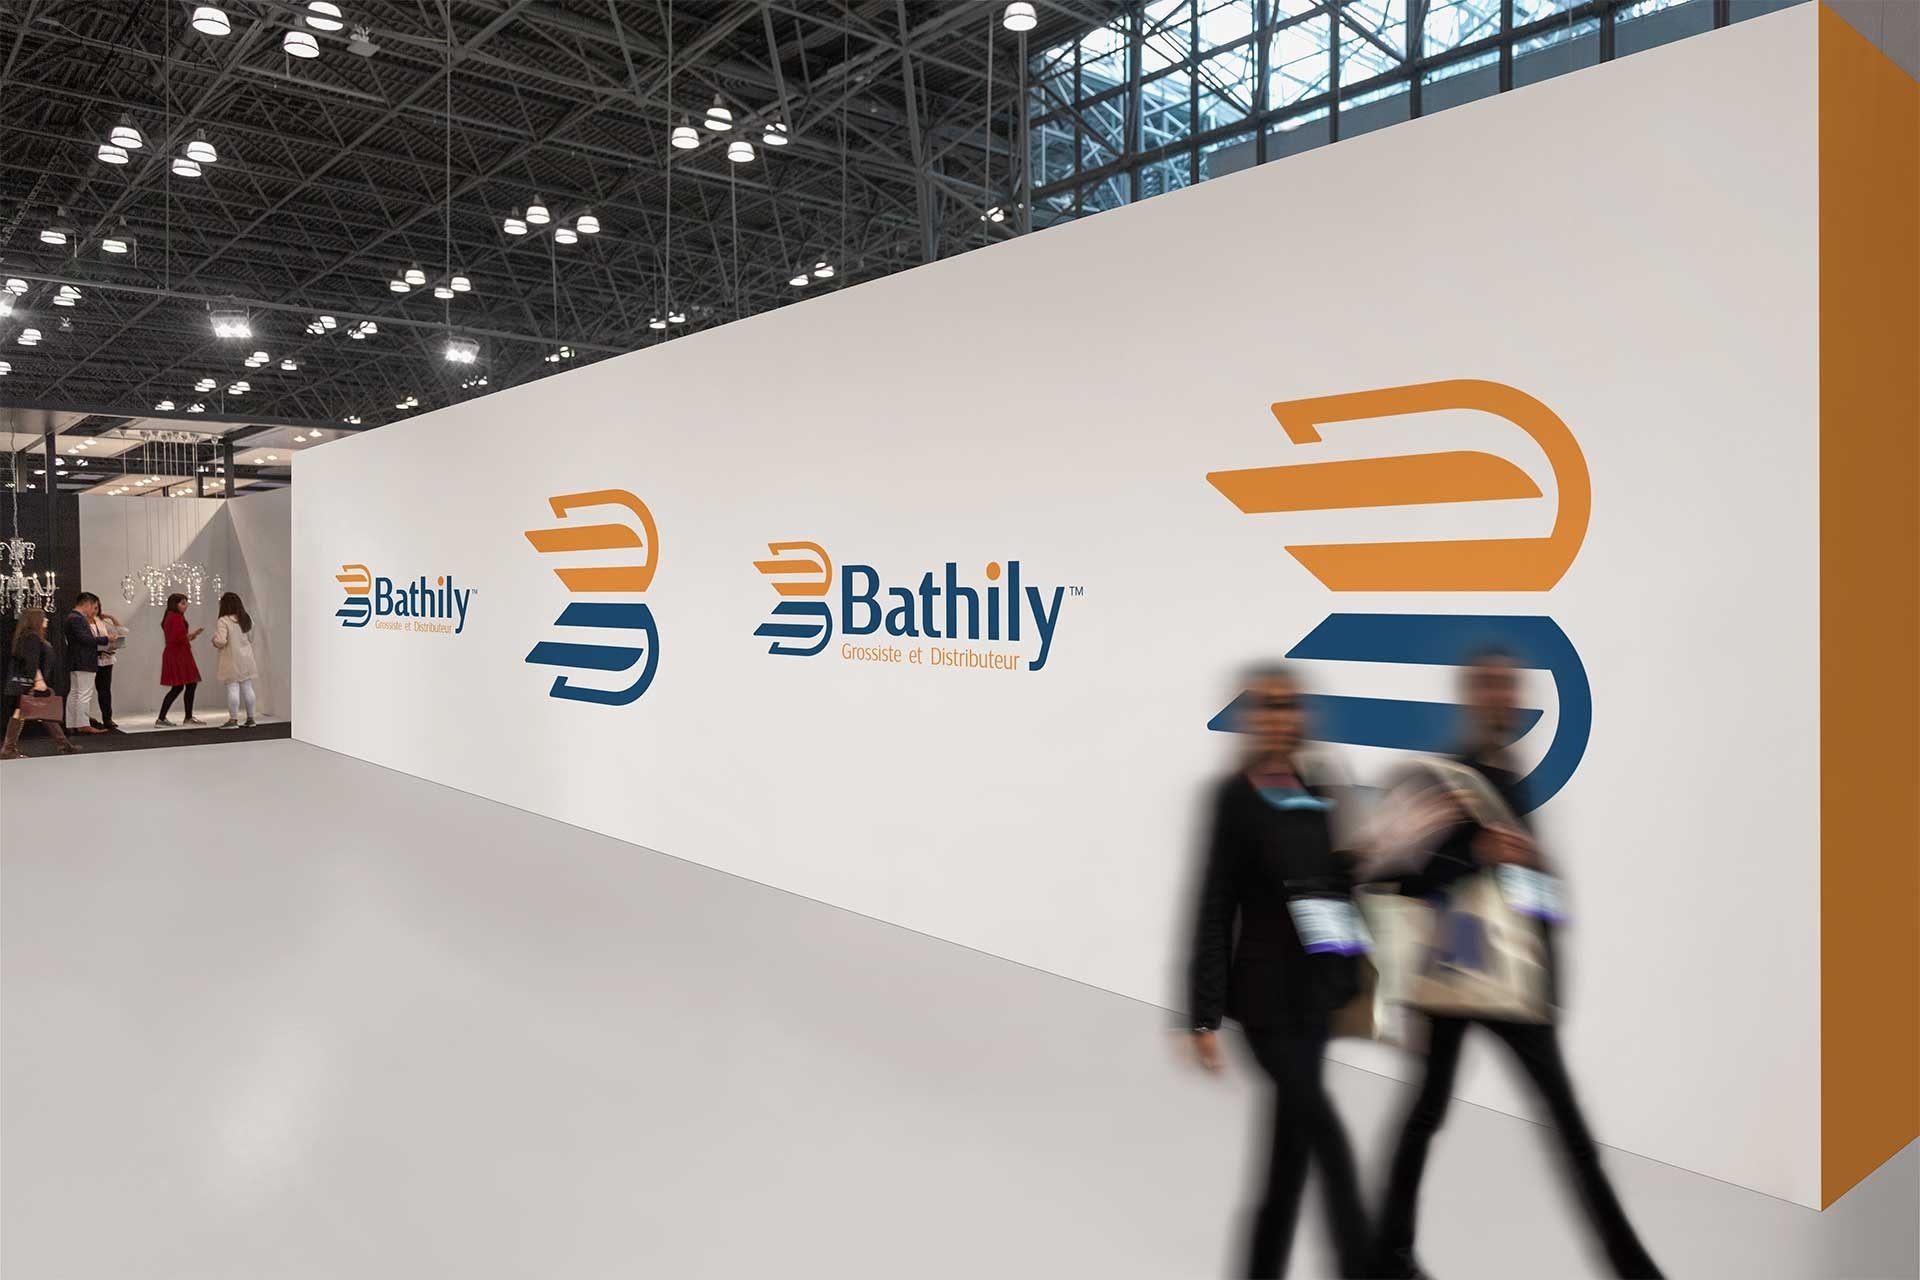 Bathily supply chain logo design presented on an exhibition wall